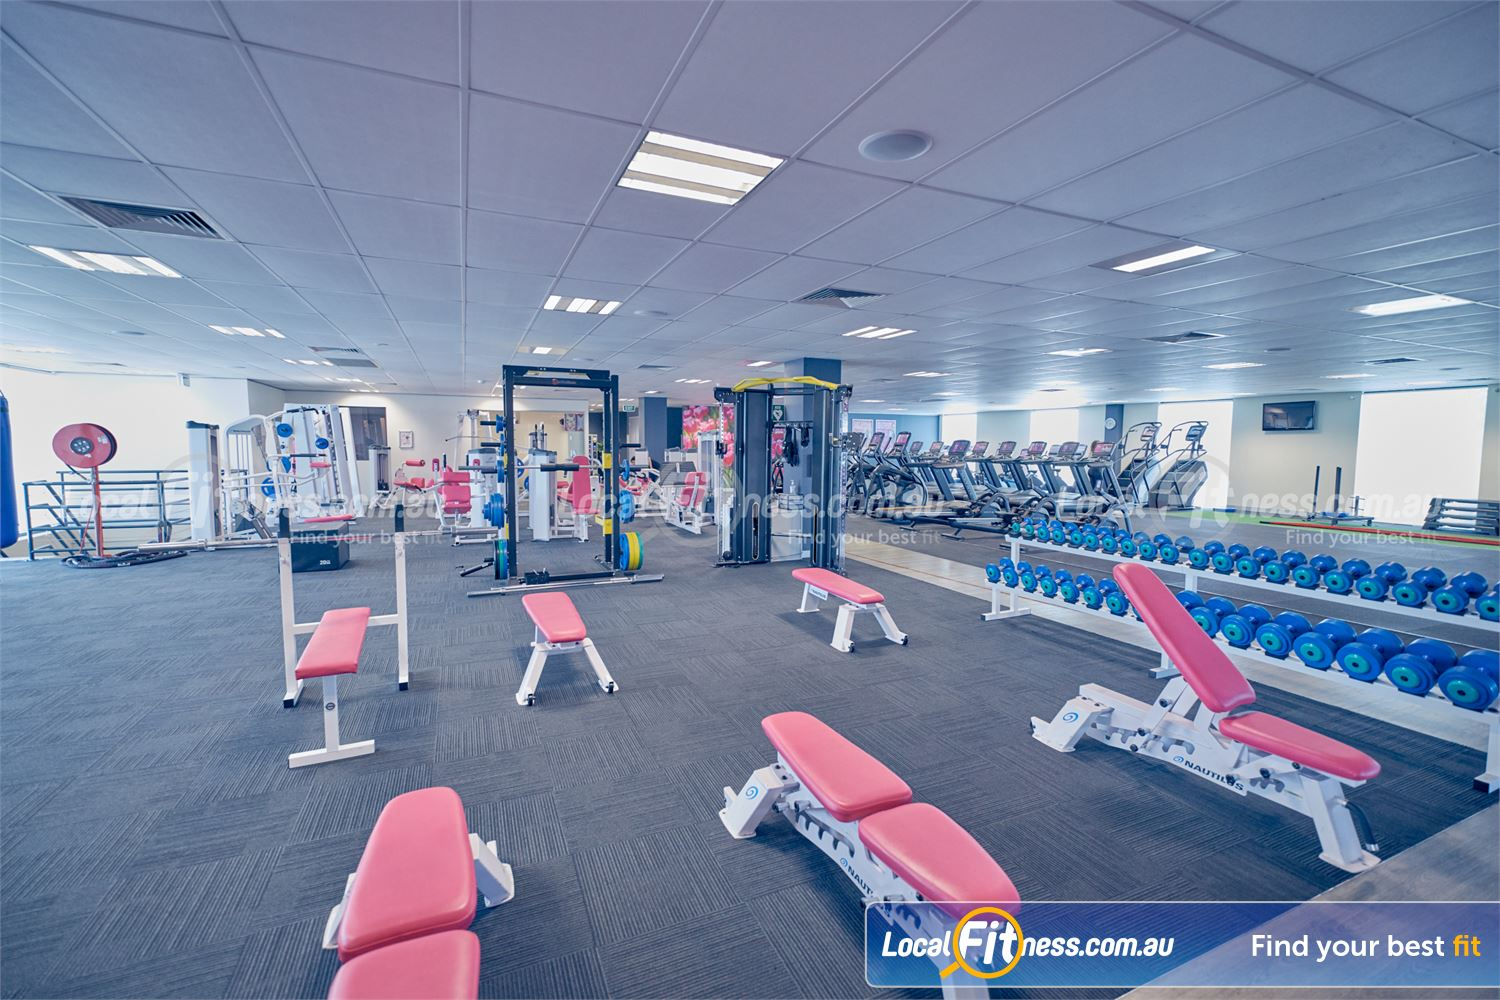 Fernwood Fitness Near Ravenhall The fully equipped free-weights area with dumbbells, barbells, benches and more.